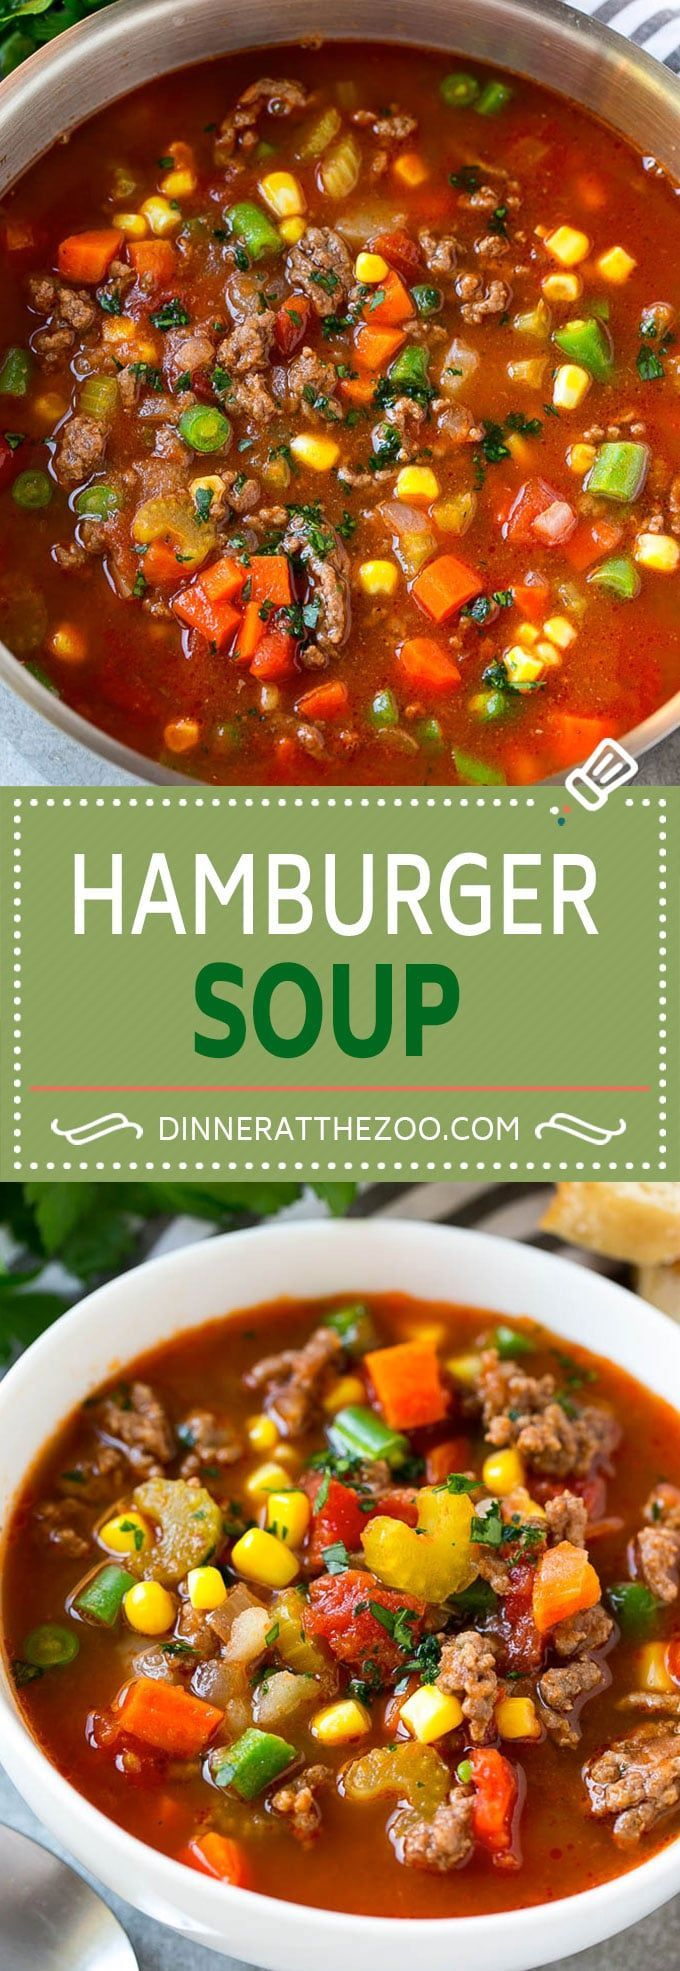 Hamburger Soup Recipe | Hamburger and Vegetable Soup | Hamburger and Potato Soup | Hamburger Stew | Ground Beef Soup